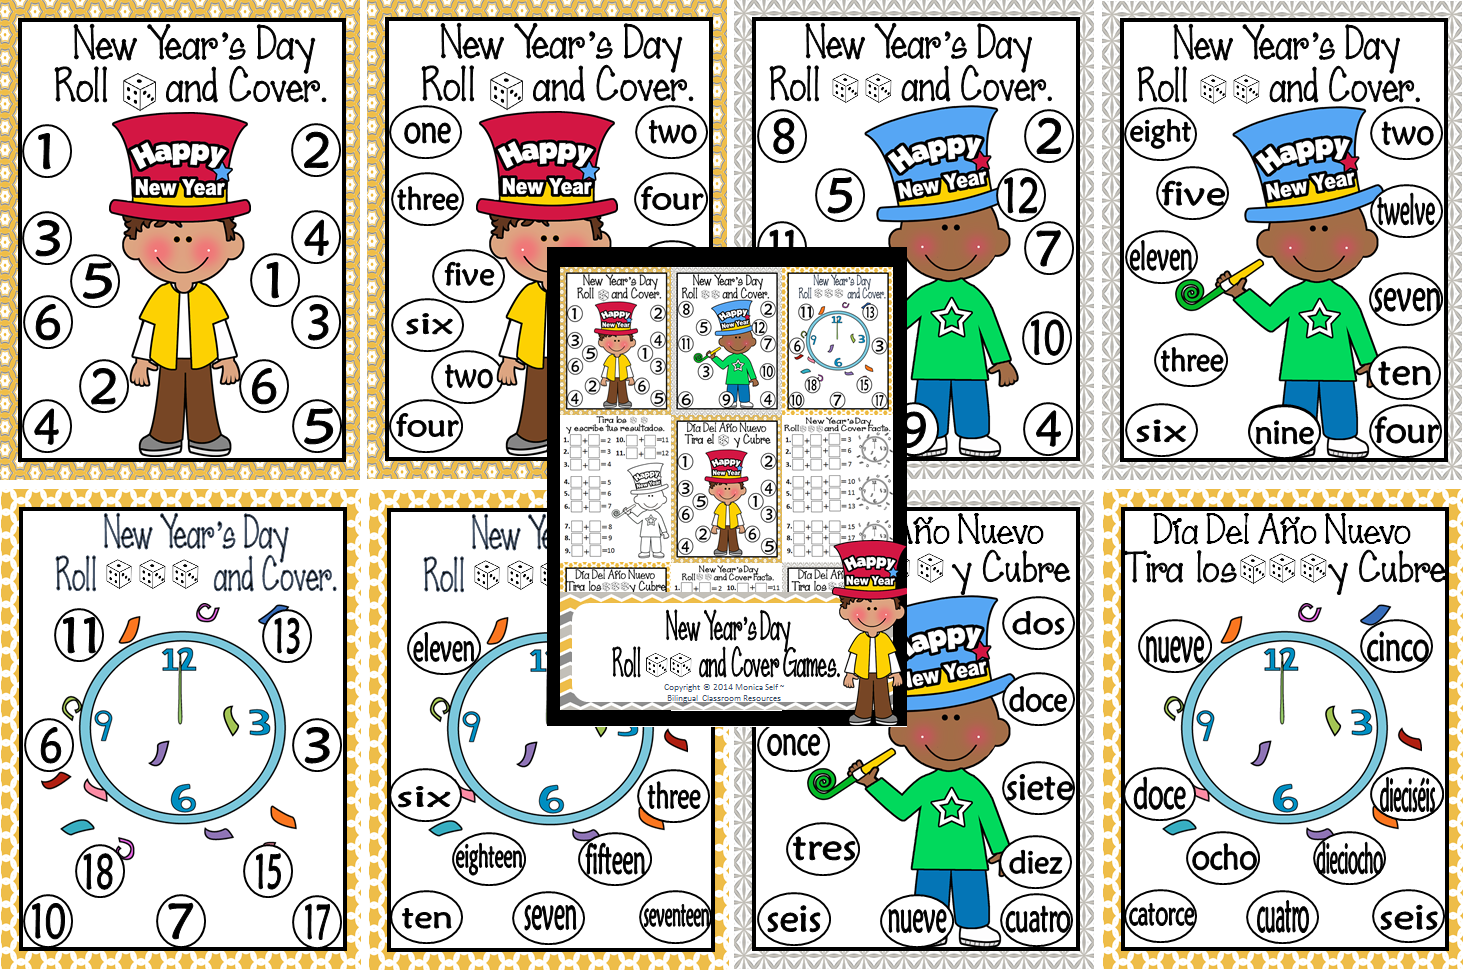 http://www.teacherspayteachers.com/Product/New-Years-Day-Roll-and-Cover-Games-1195235